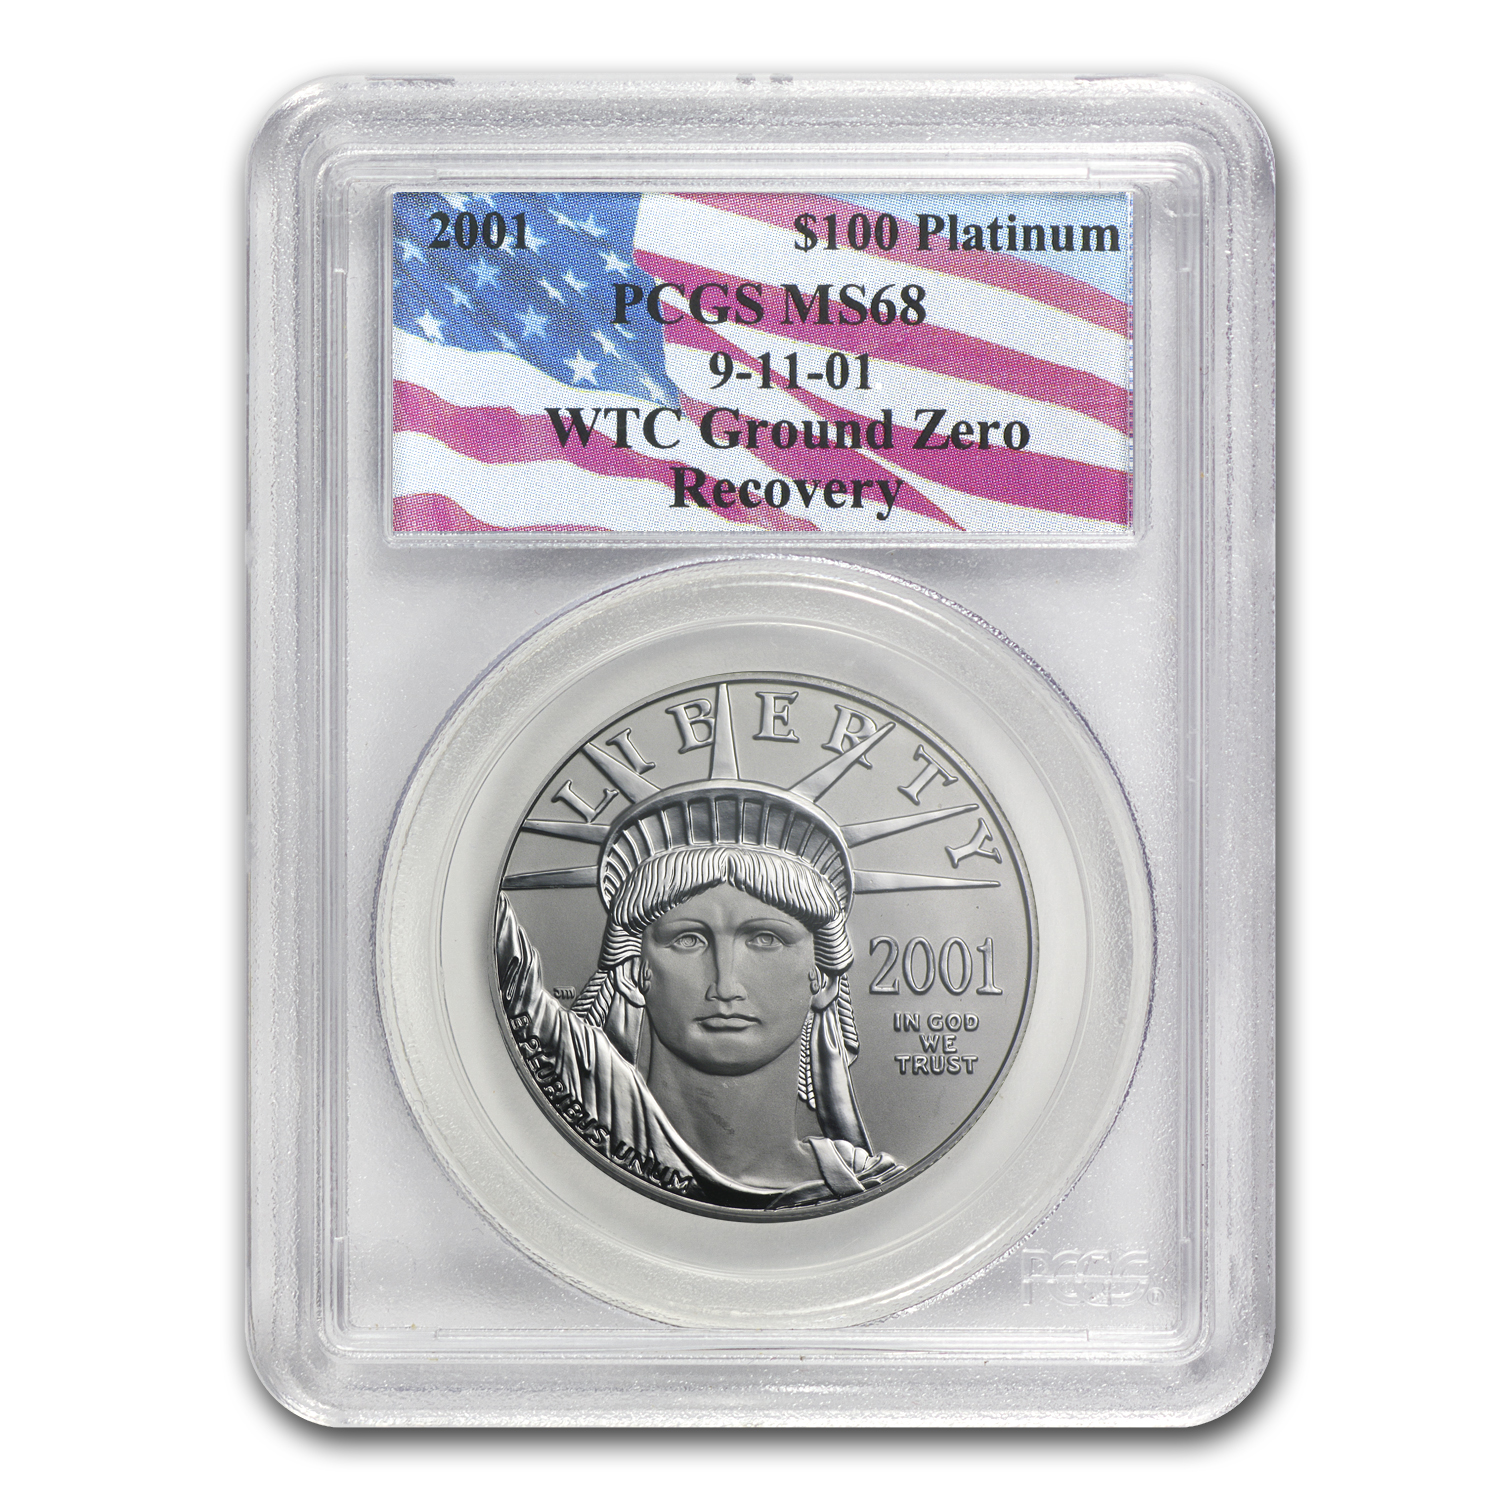 2001 1 oz Platinum American Eagle MS-68 PCGS (World Trade Center)